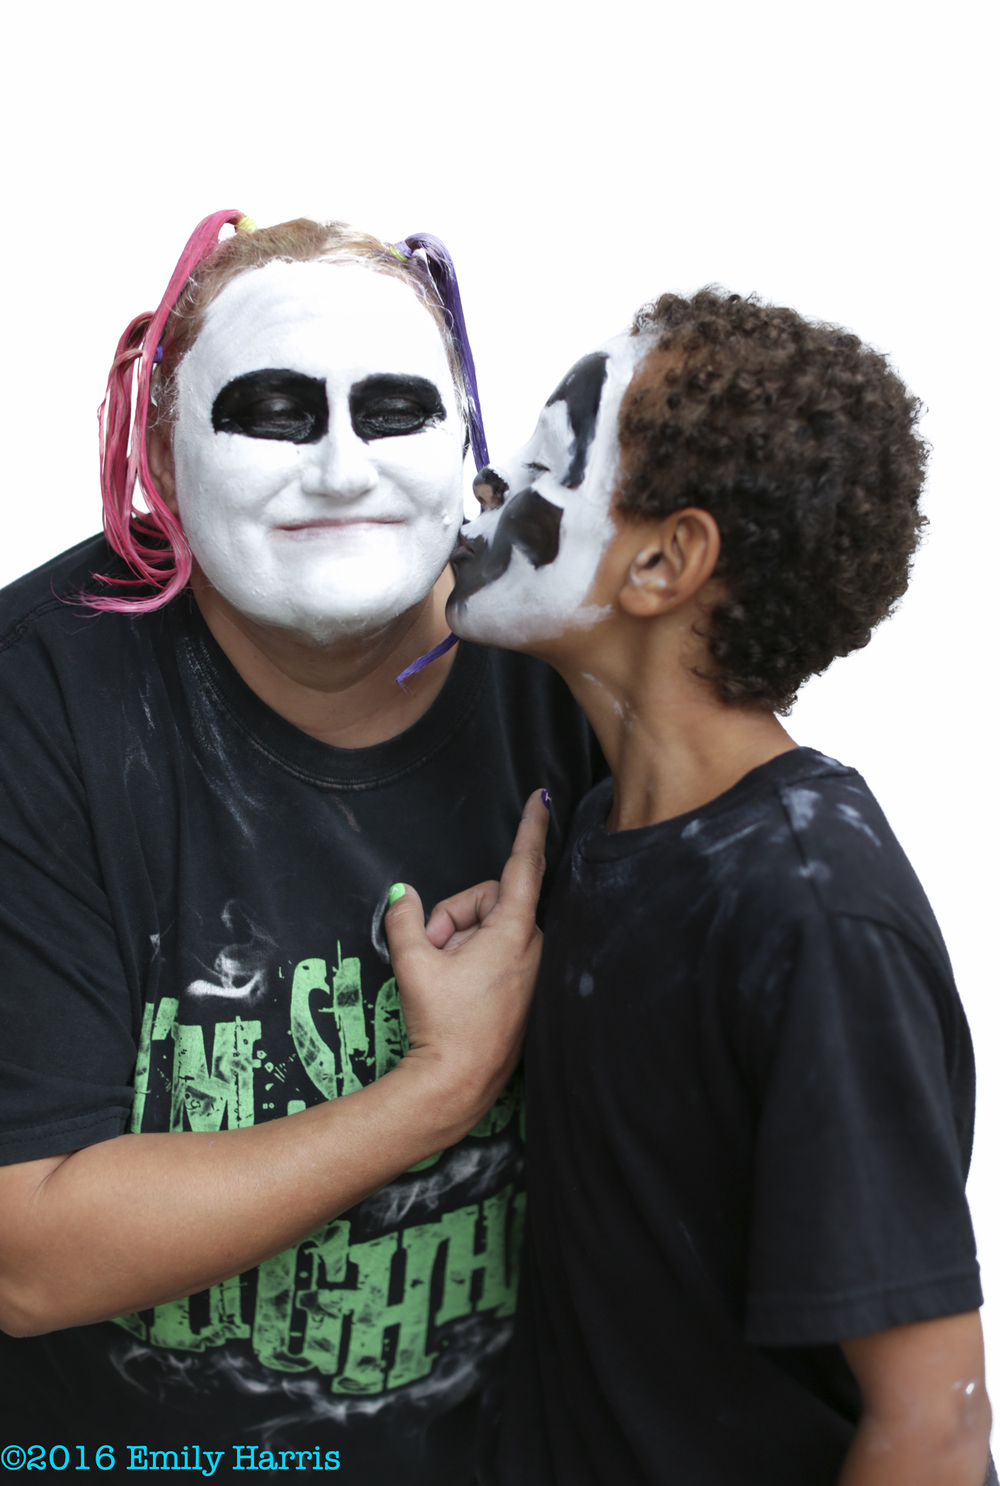 Juggalos_Portraits_Untitled-2.jpg